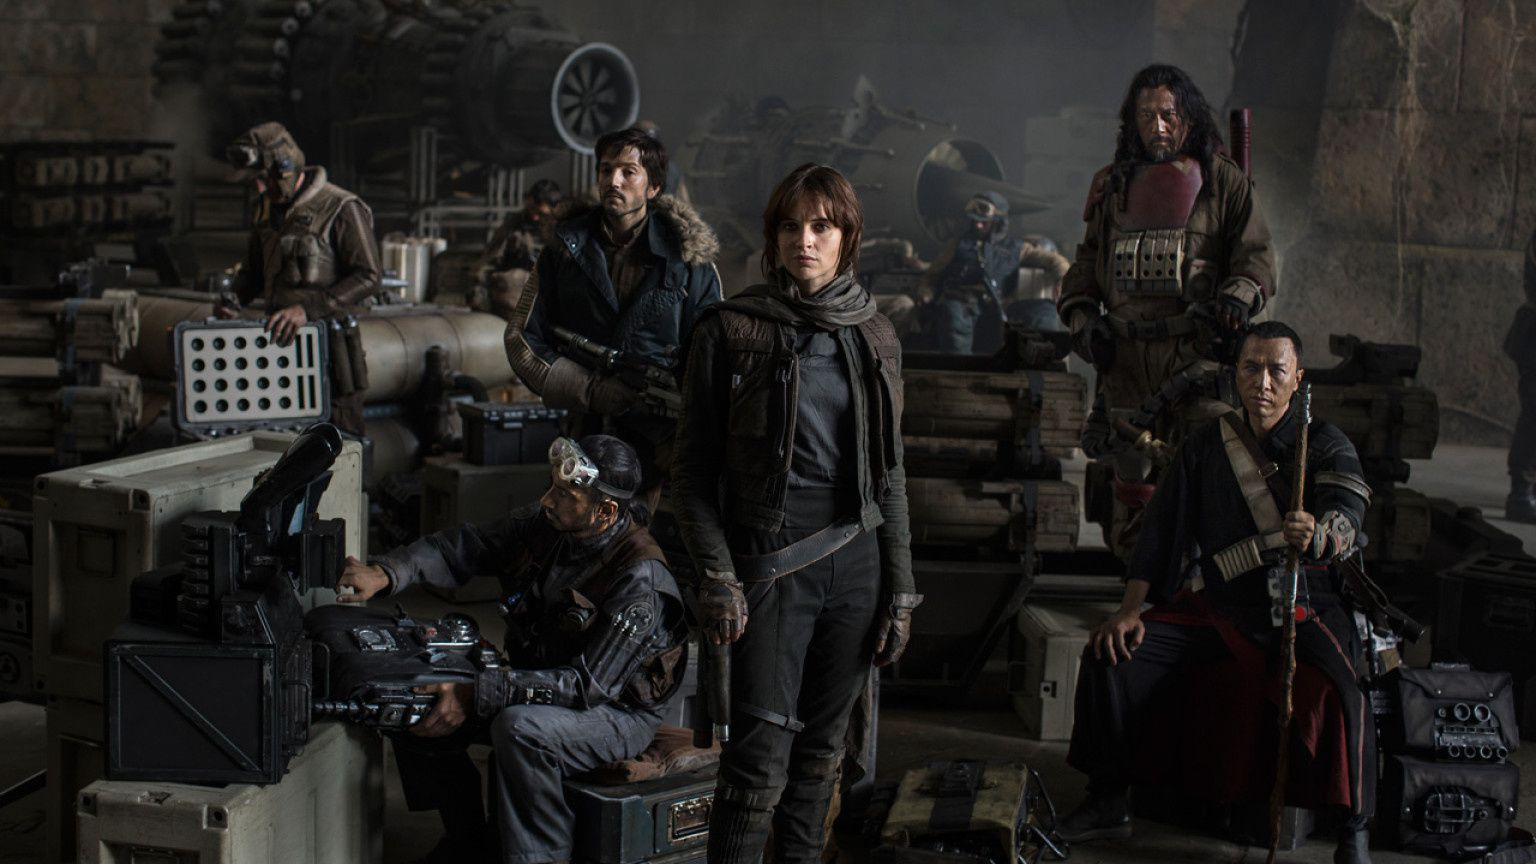 [Contre critique] Rogue One, le pire de la rebellion Star Wars